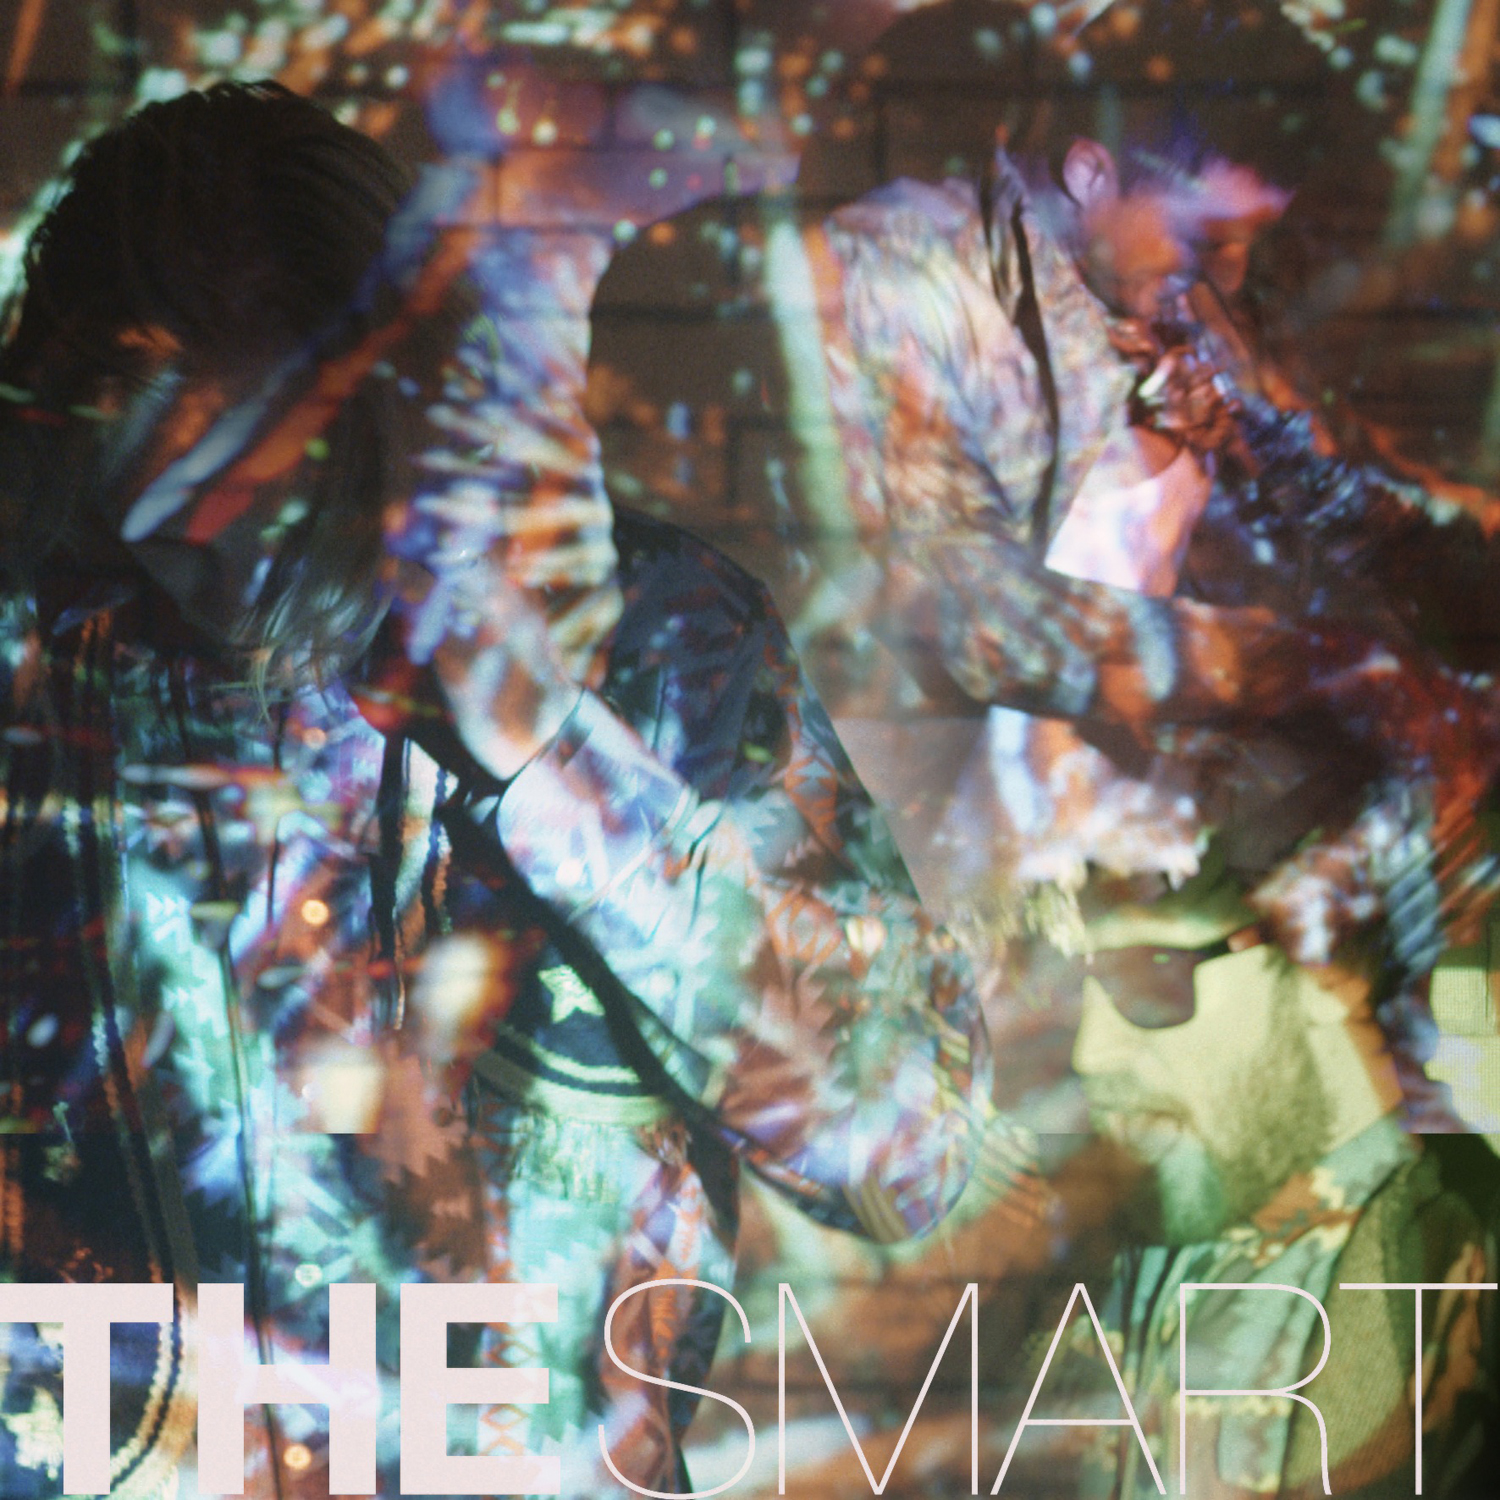 The Smart - City Lights (4PLAY Remixes)